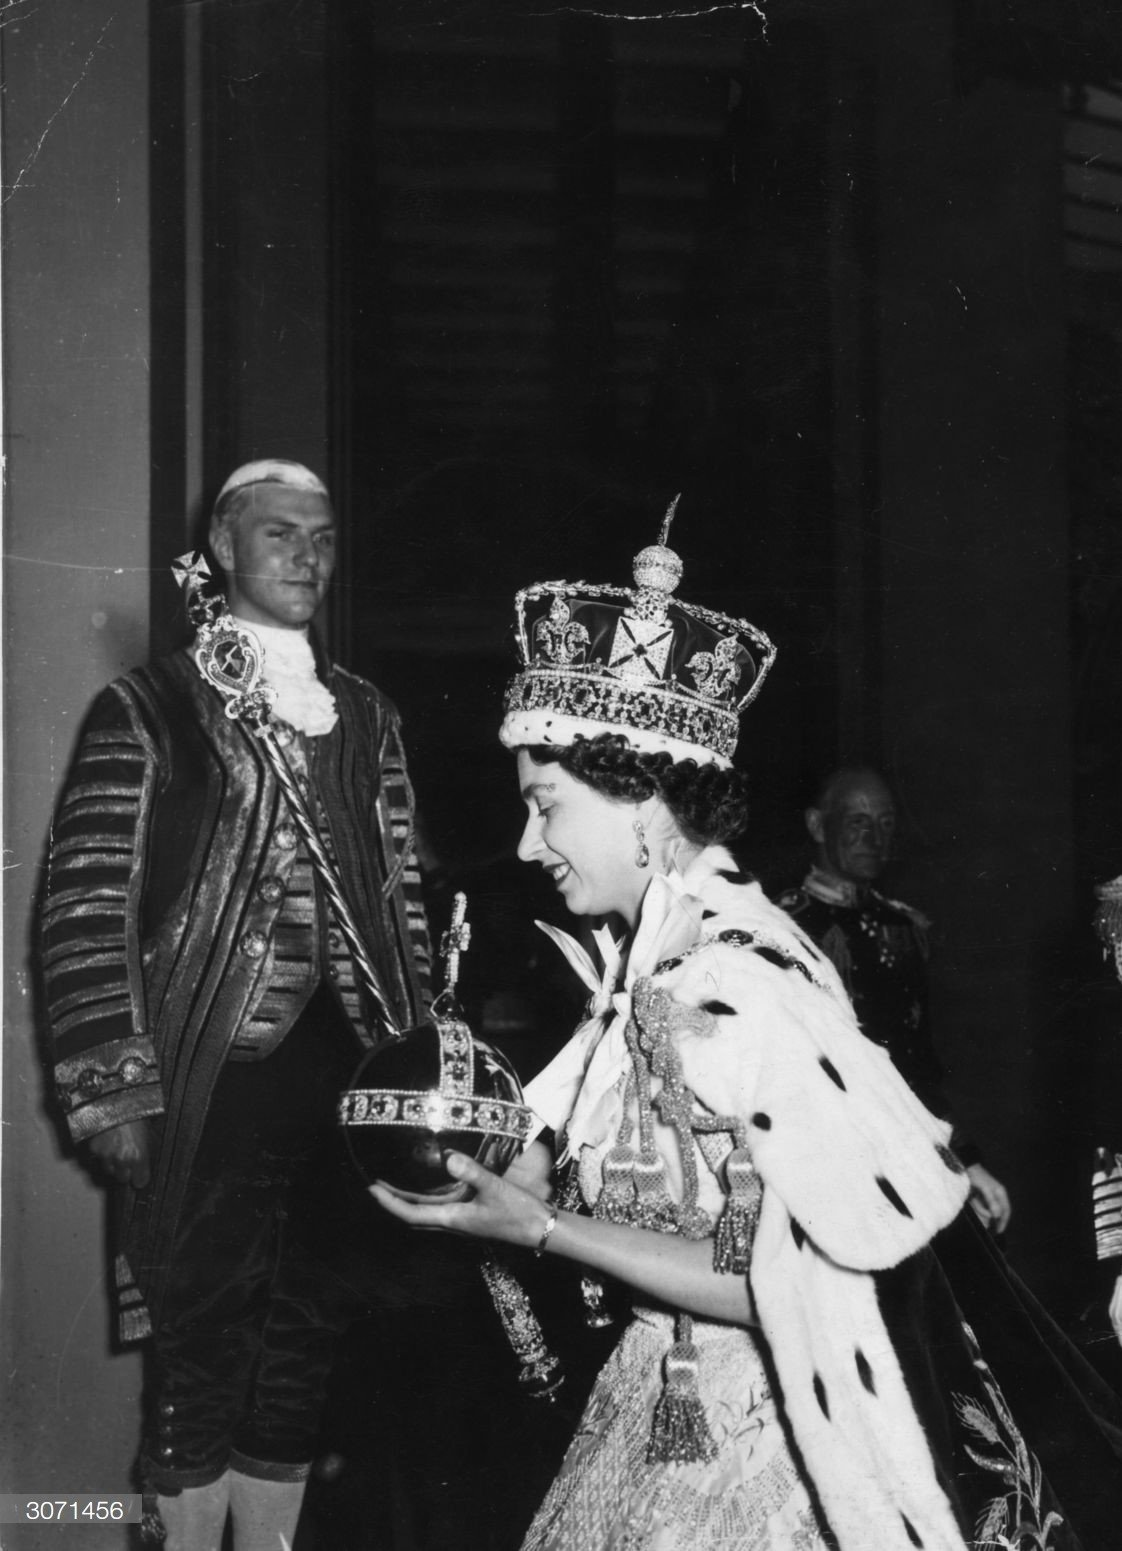 Queen Elizabeth II during her coronation in Westminster Abbey, London. | Source: Getty Images